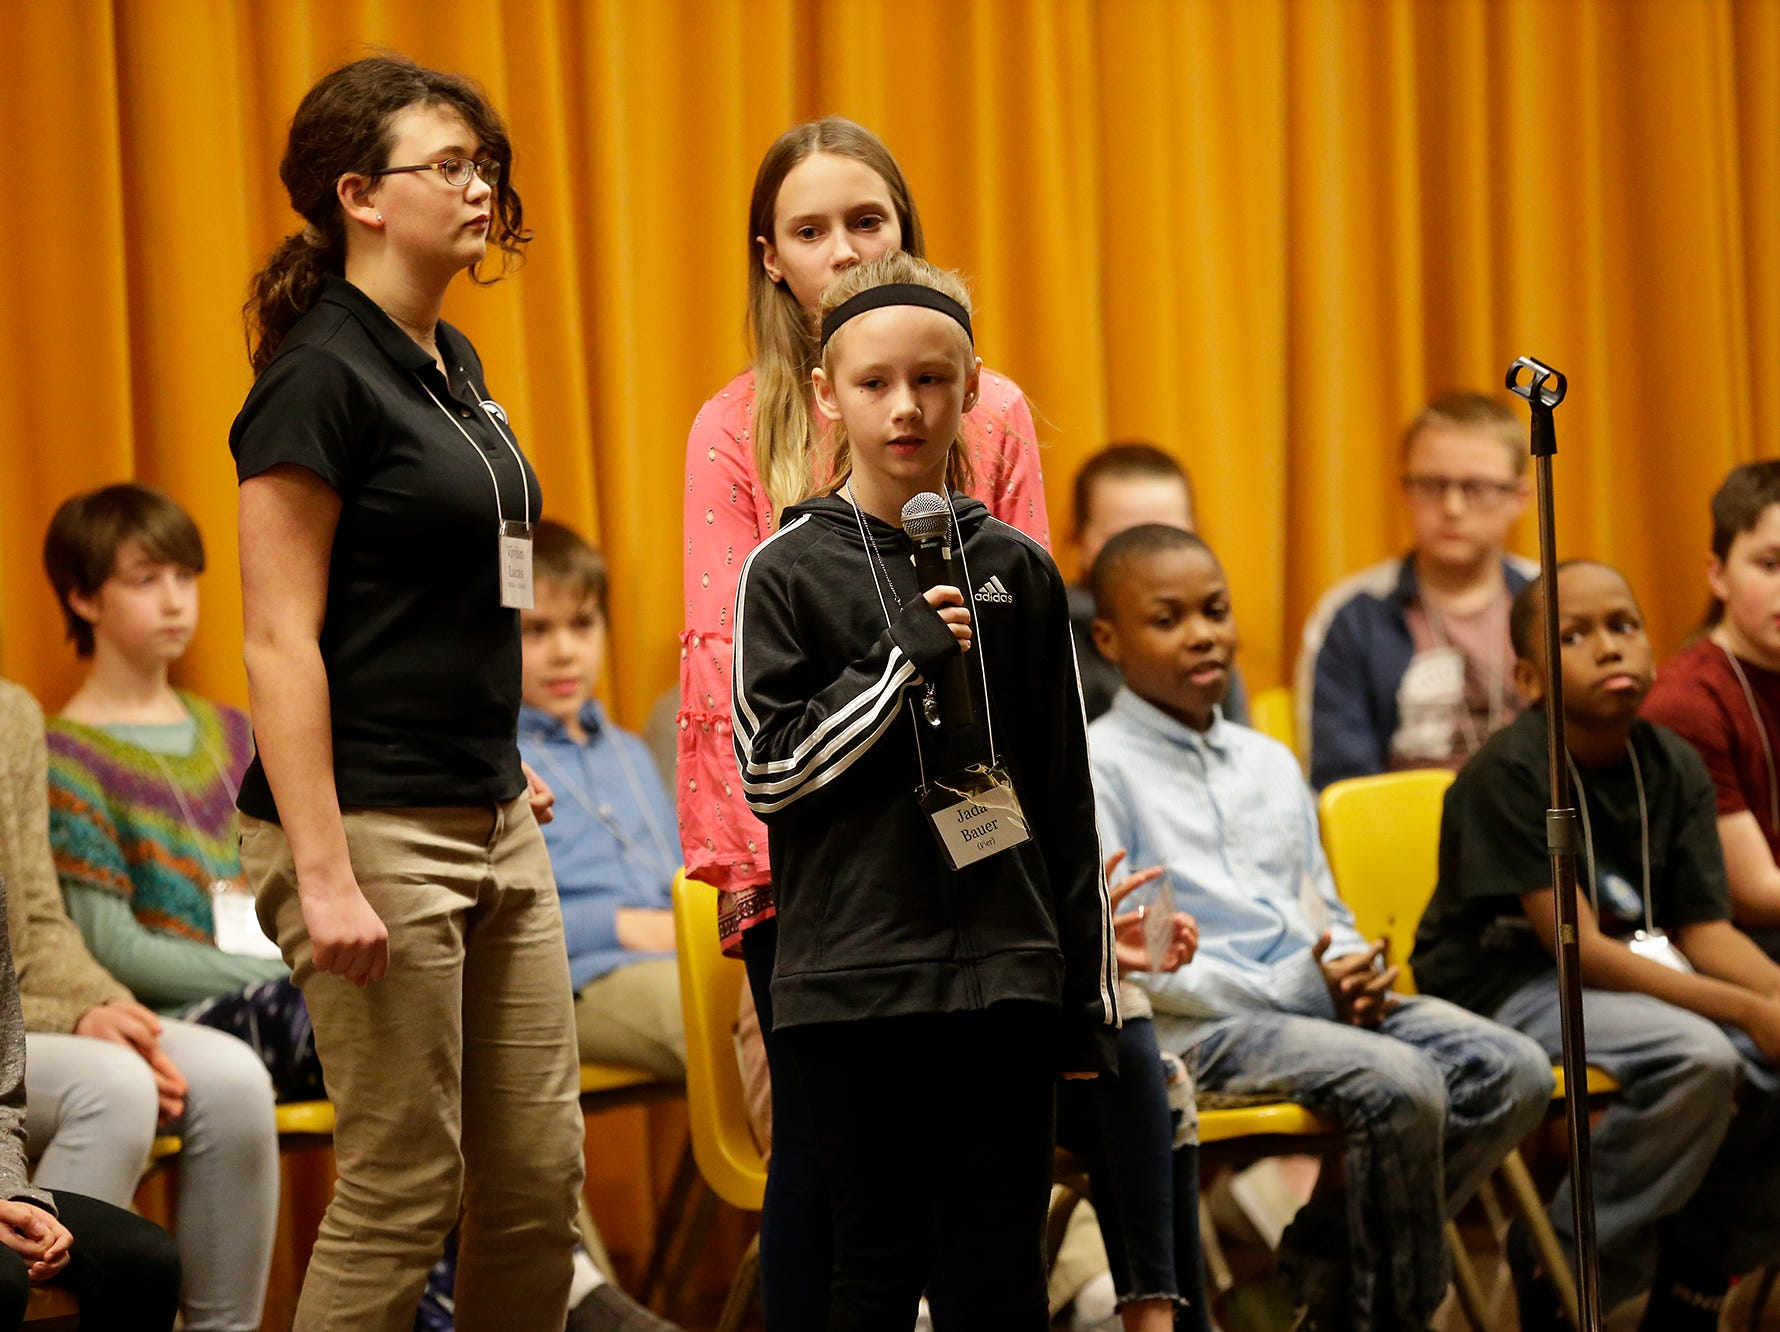 Jada Bauer of Pier competes in the Fond du Lac citywide spelling bee Tuesday, February 26, 2019 at These Middle School in Fond du Lac, Wis. Doug Raflik/USA TODAY NETWORK-Wisconsin